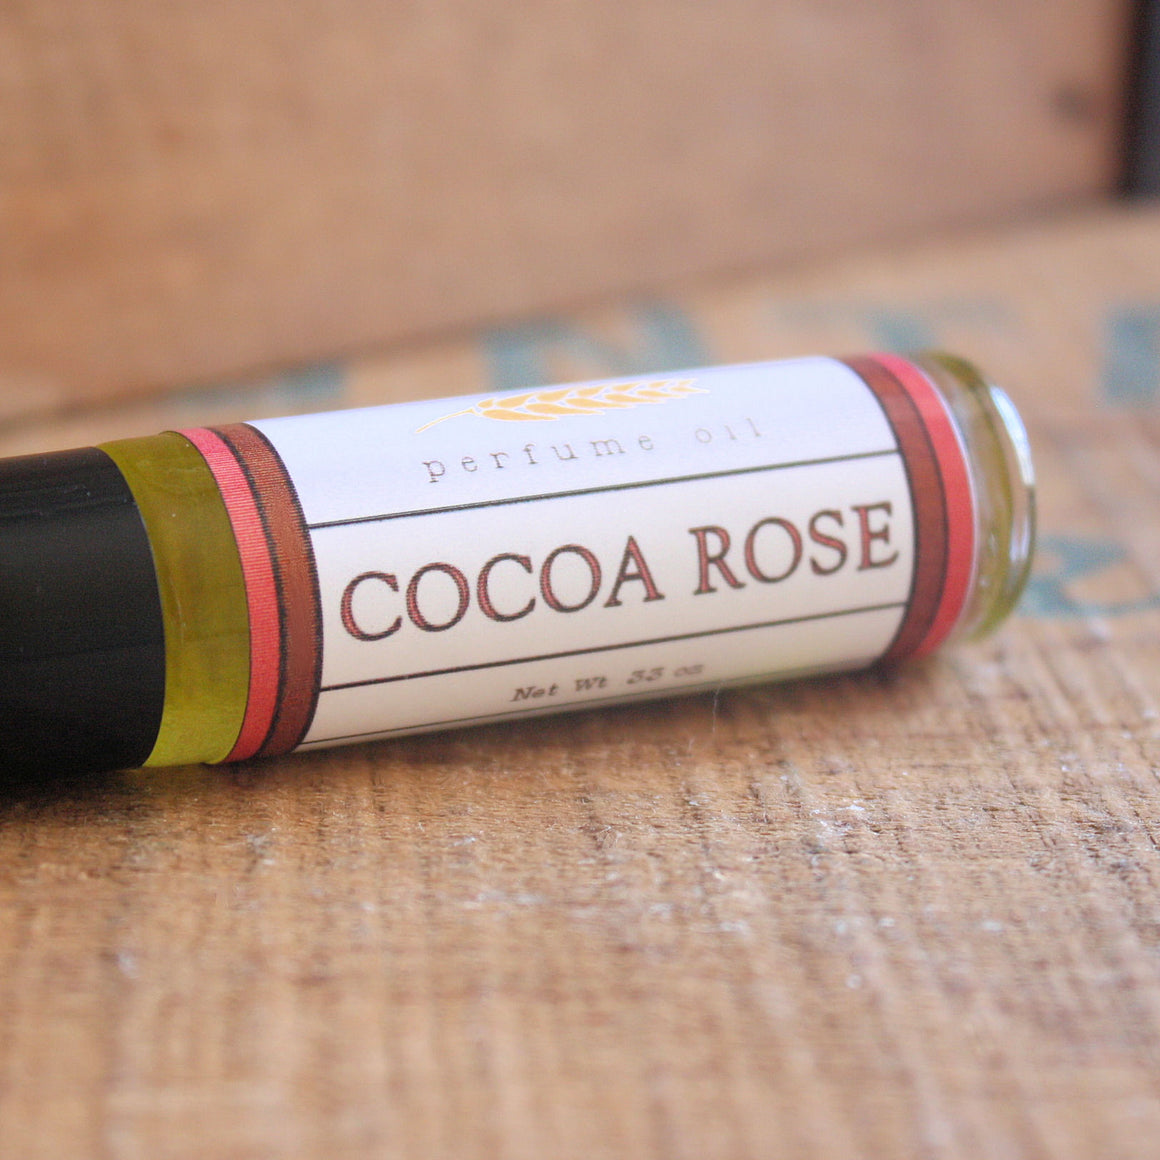 Cocoa Rose Perfume Oil